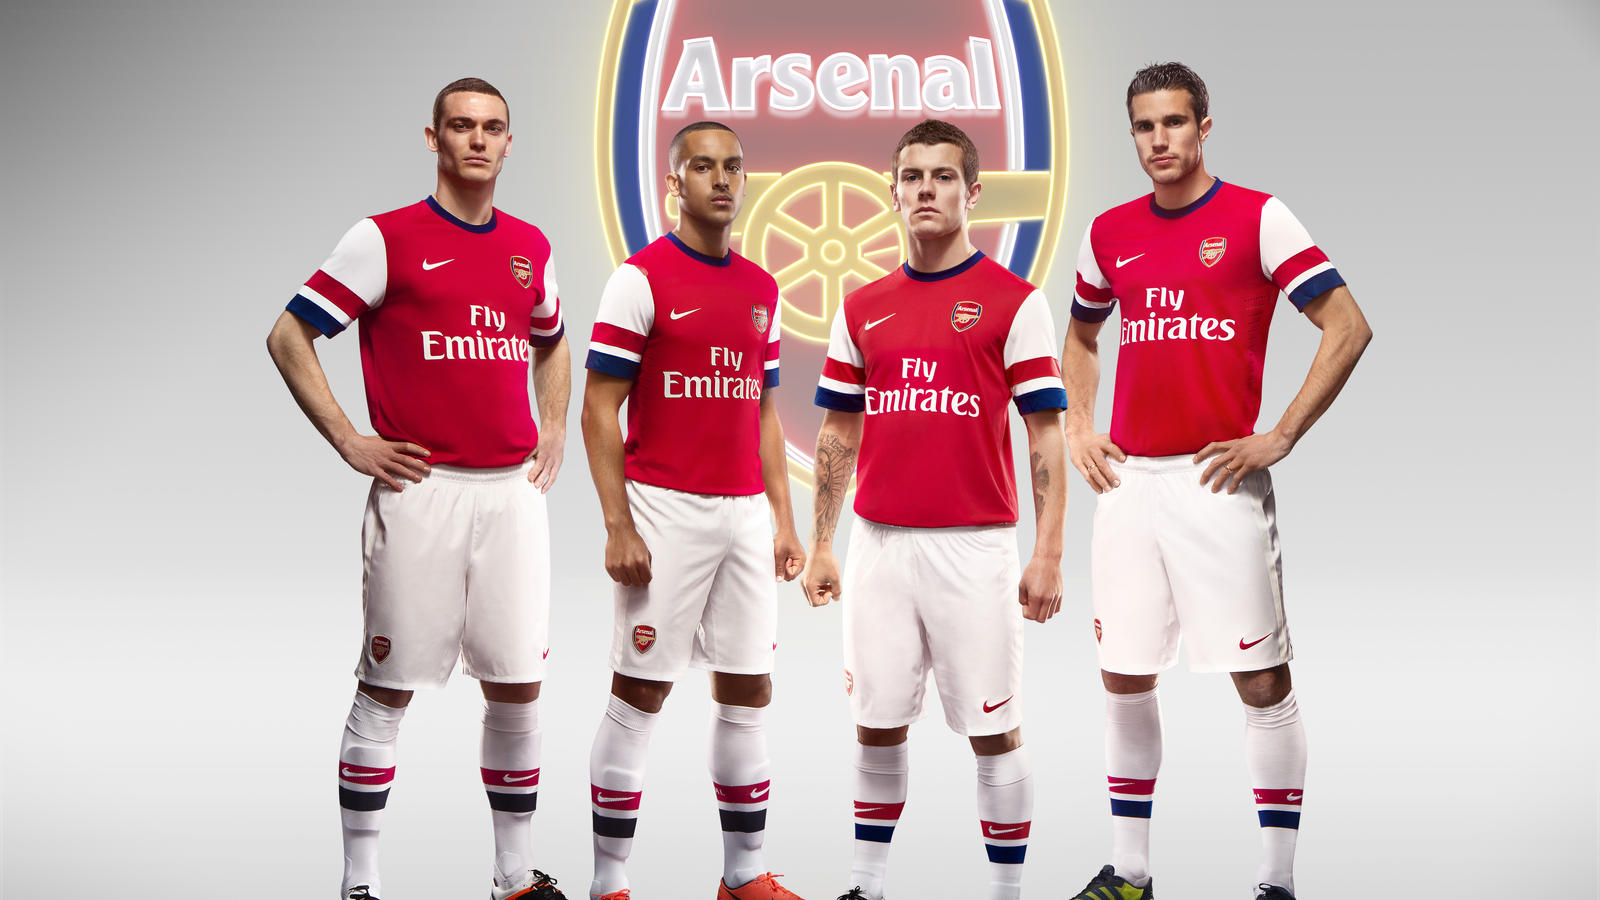 new product cfaec 34ba6 Nike Football Unveils Arsenal Home Kit for Season 2012/13 ...